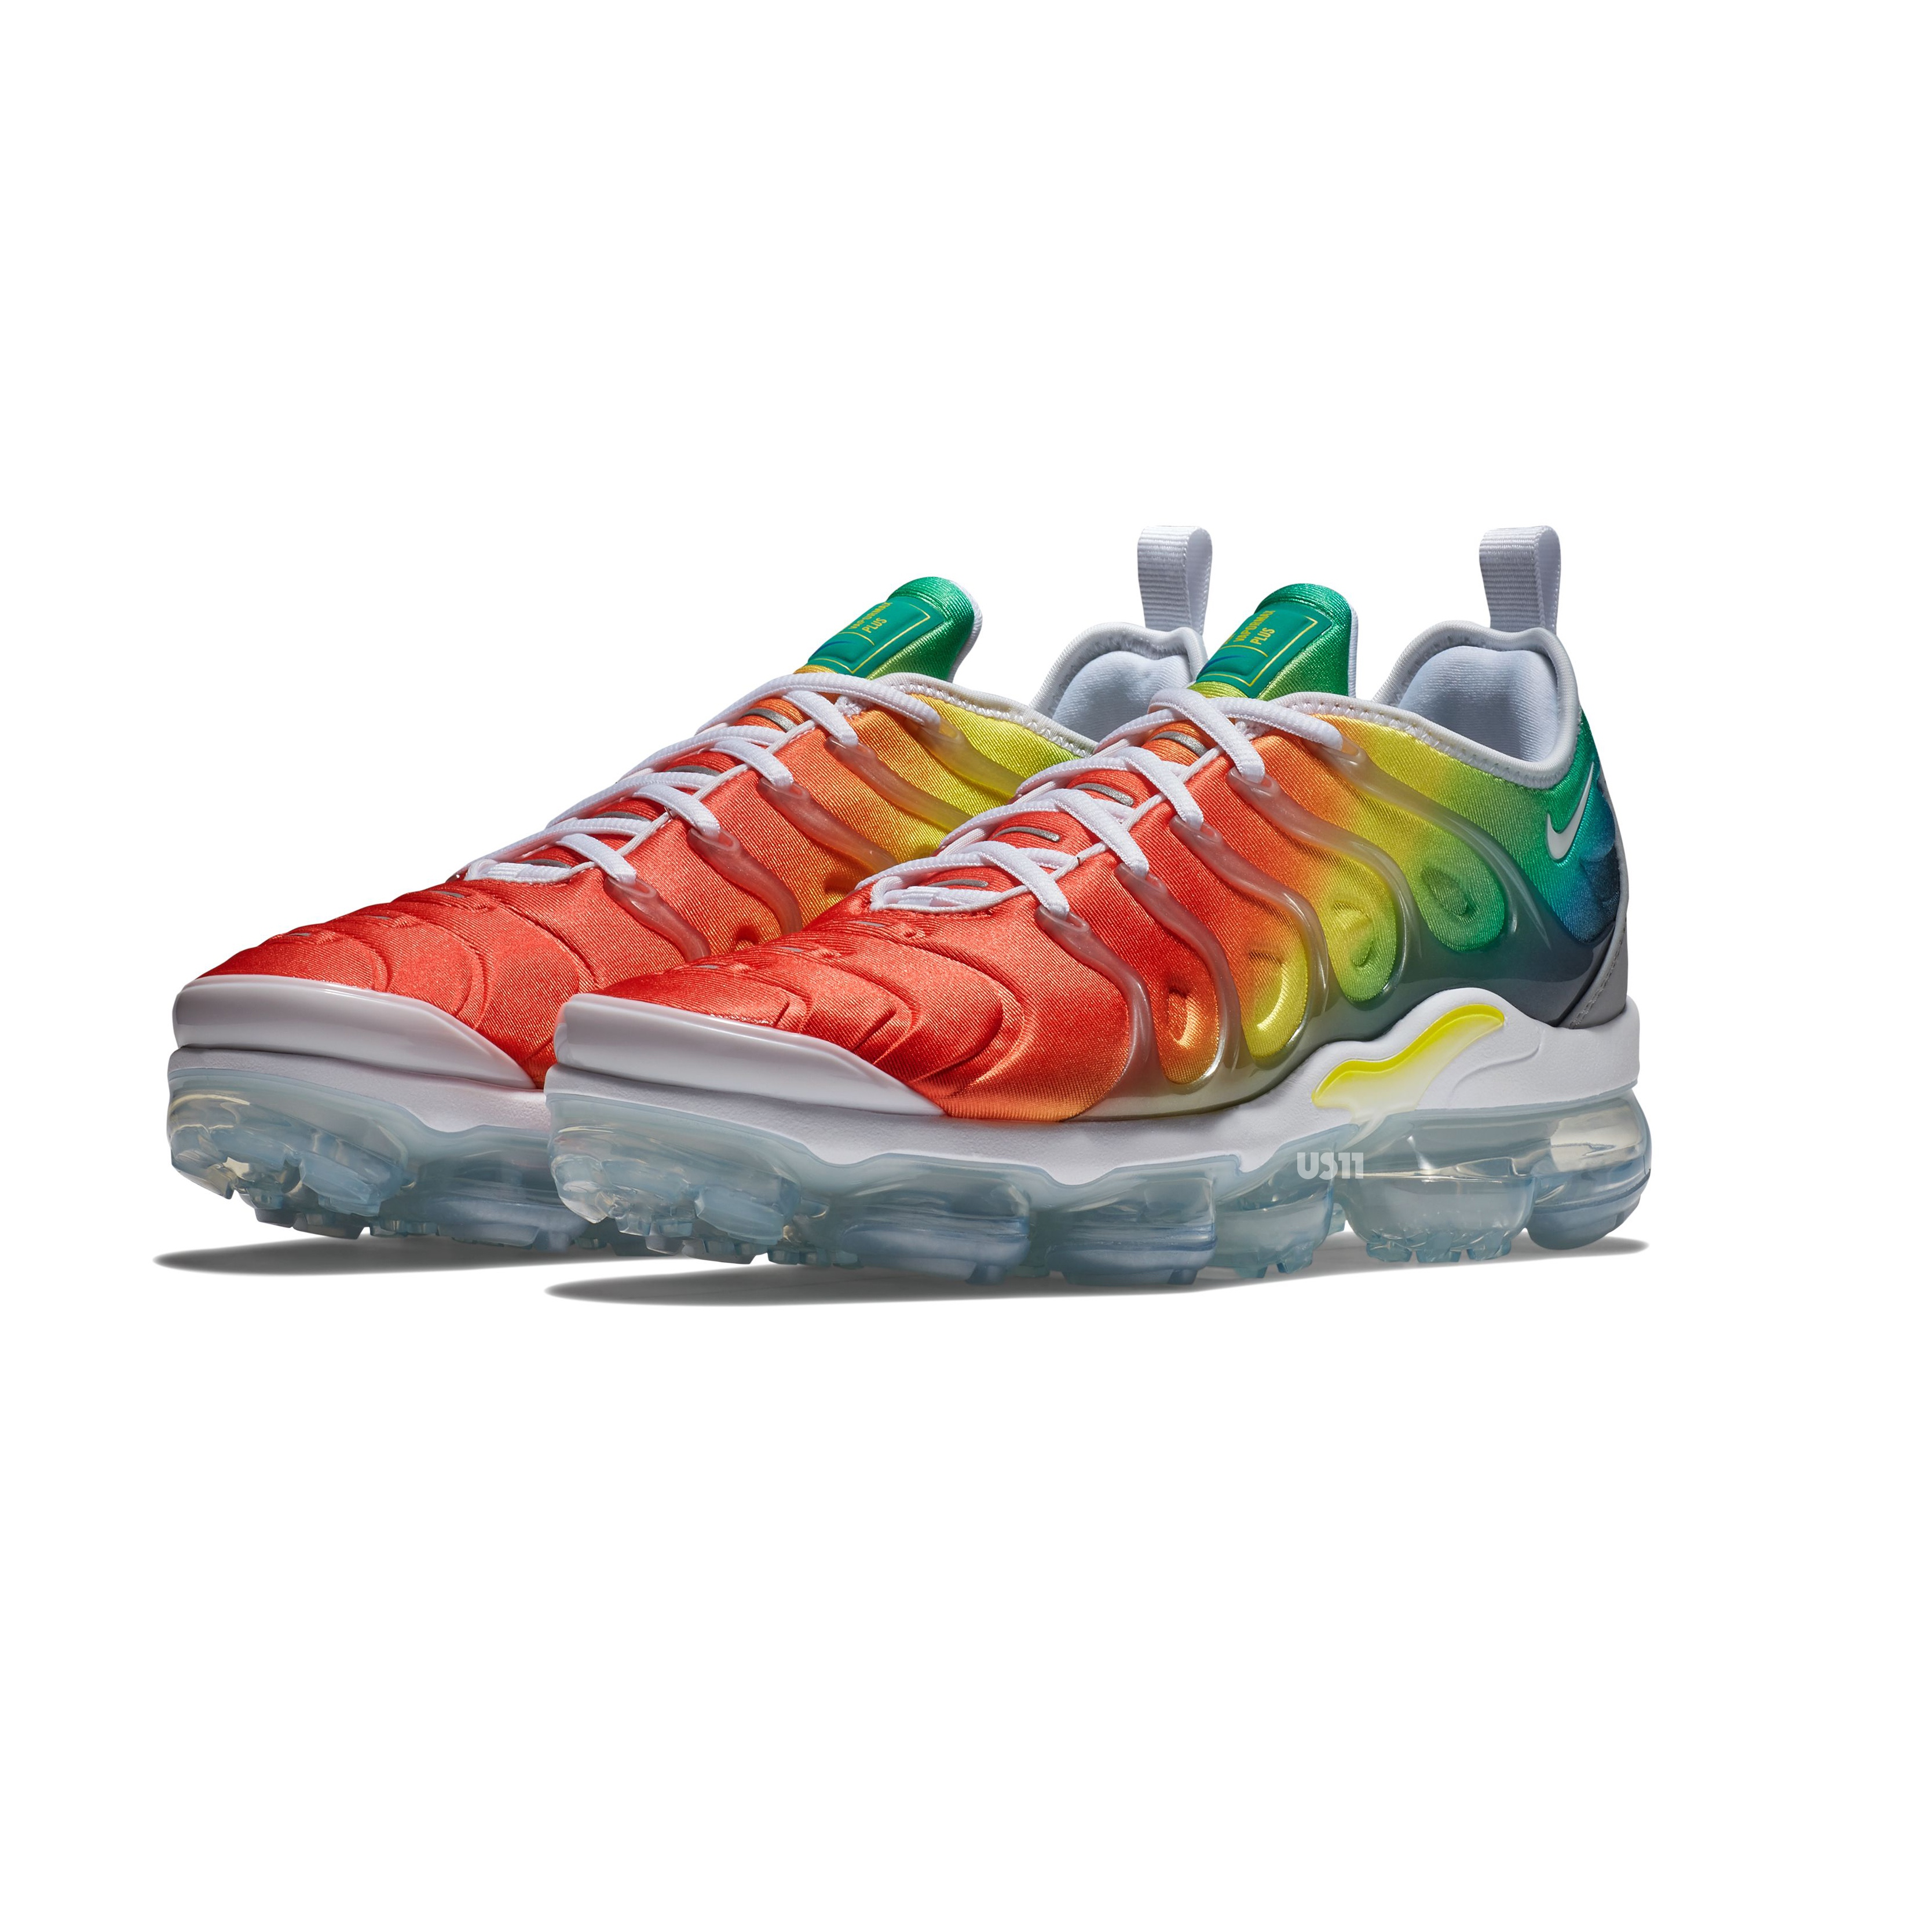 premium selection 1745d 23c2b Look Out For This Rainbow-Themed Nike Air VaporMax Plus ...